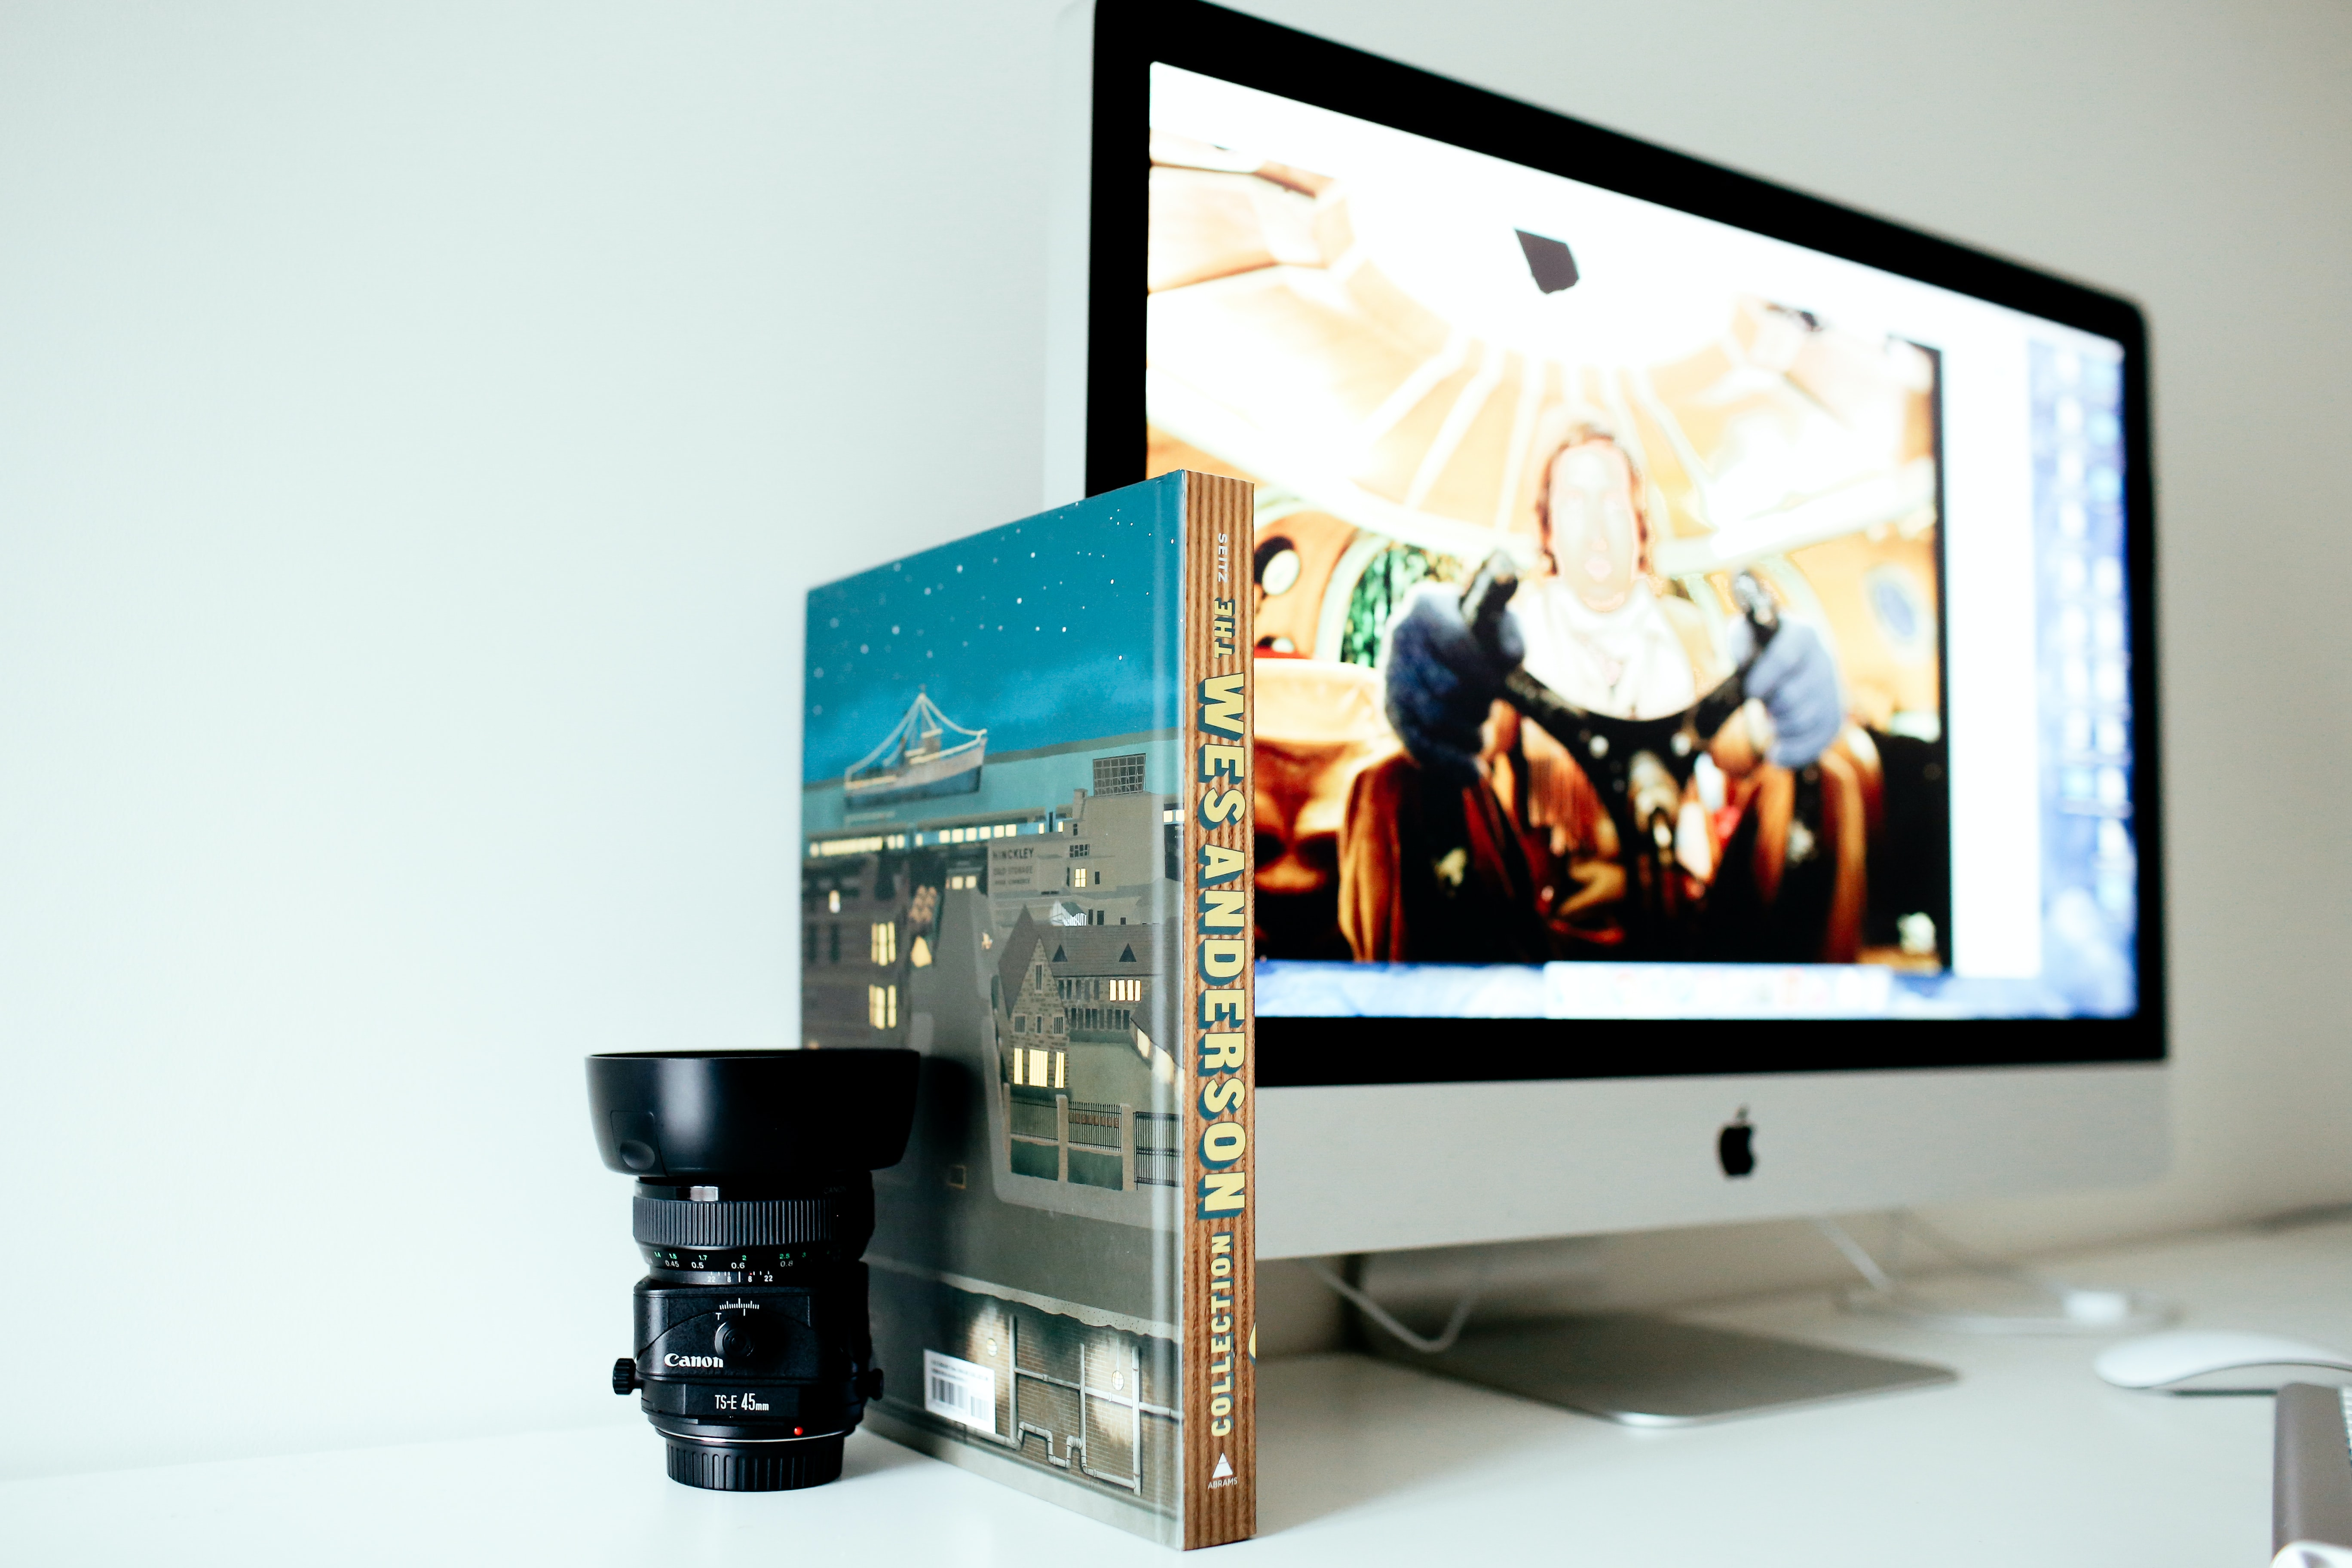 selective focus photography of black camera lens beside book and turned on iMac